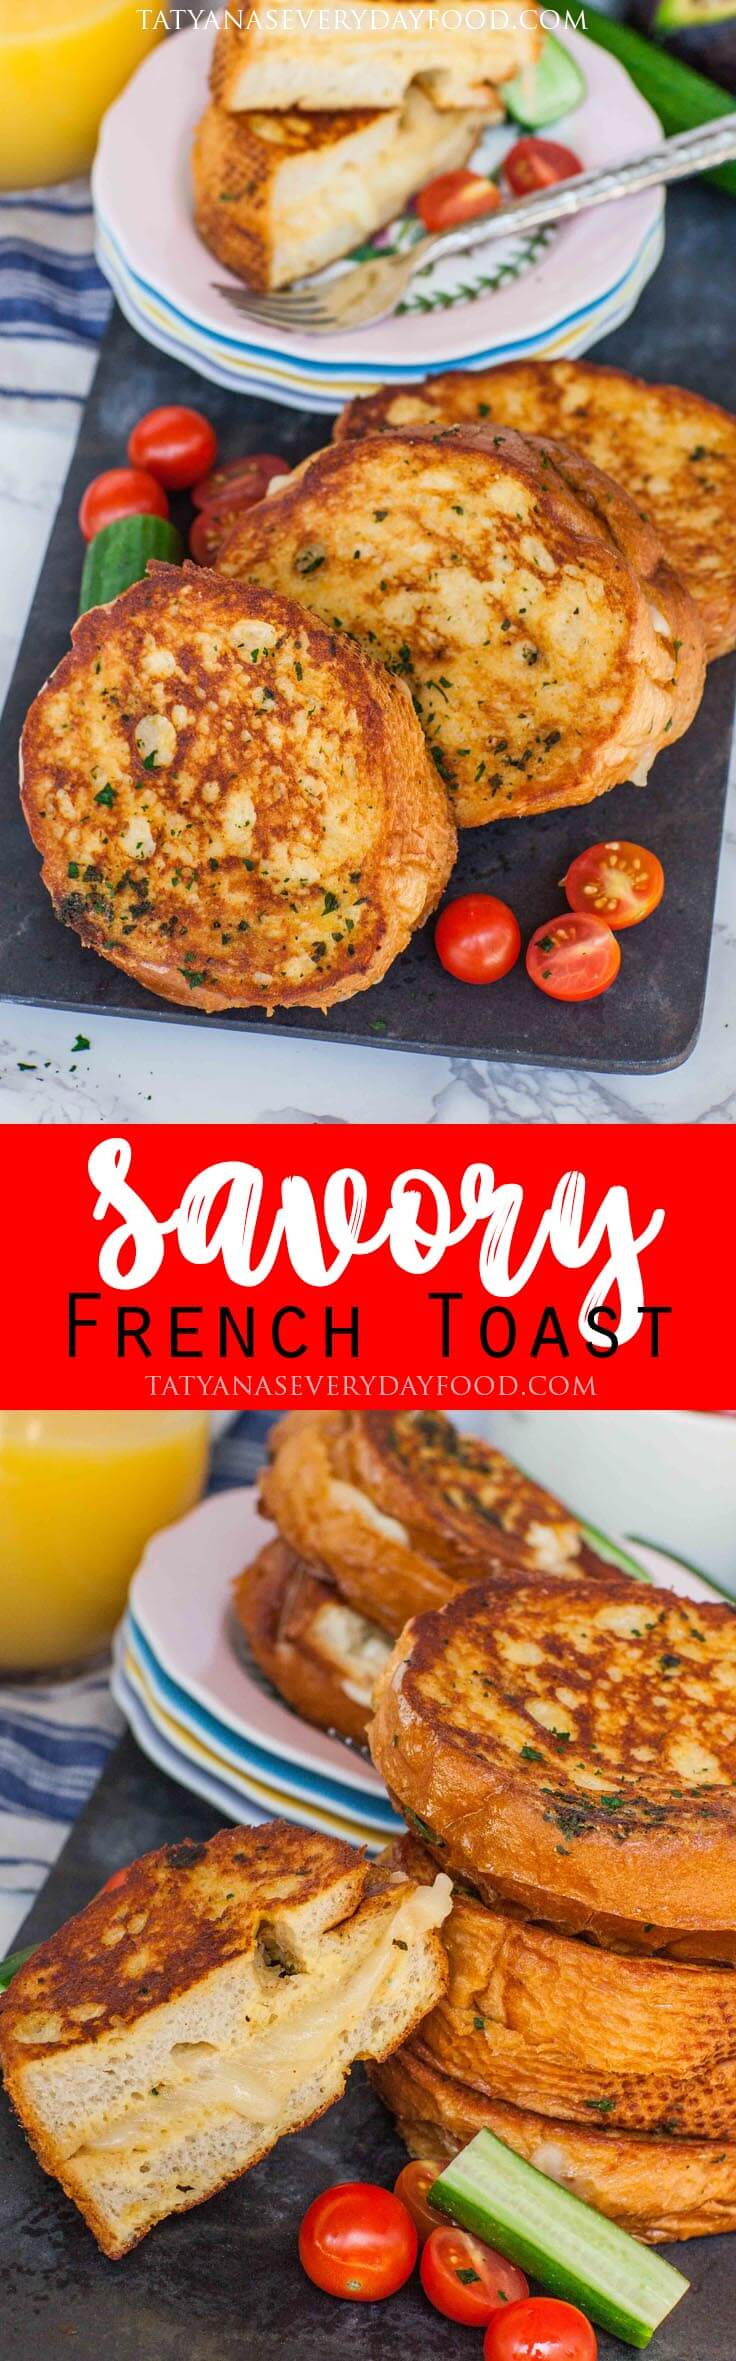 Savory French Toast with cheese